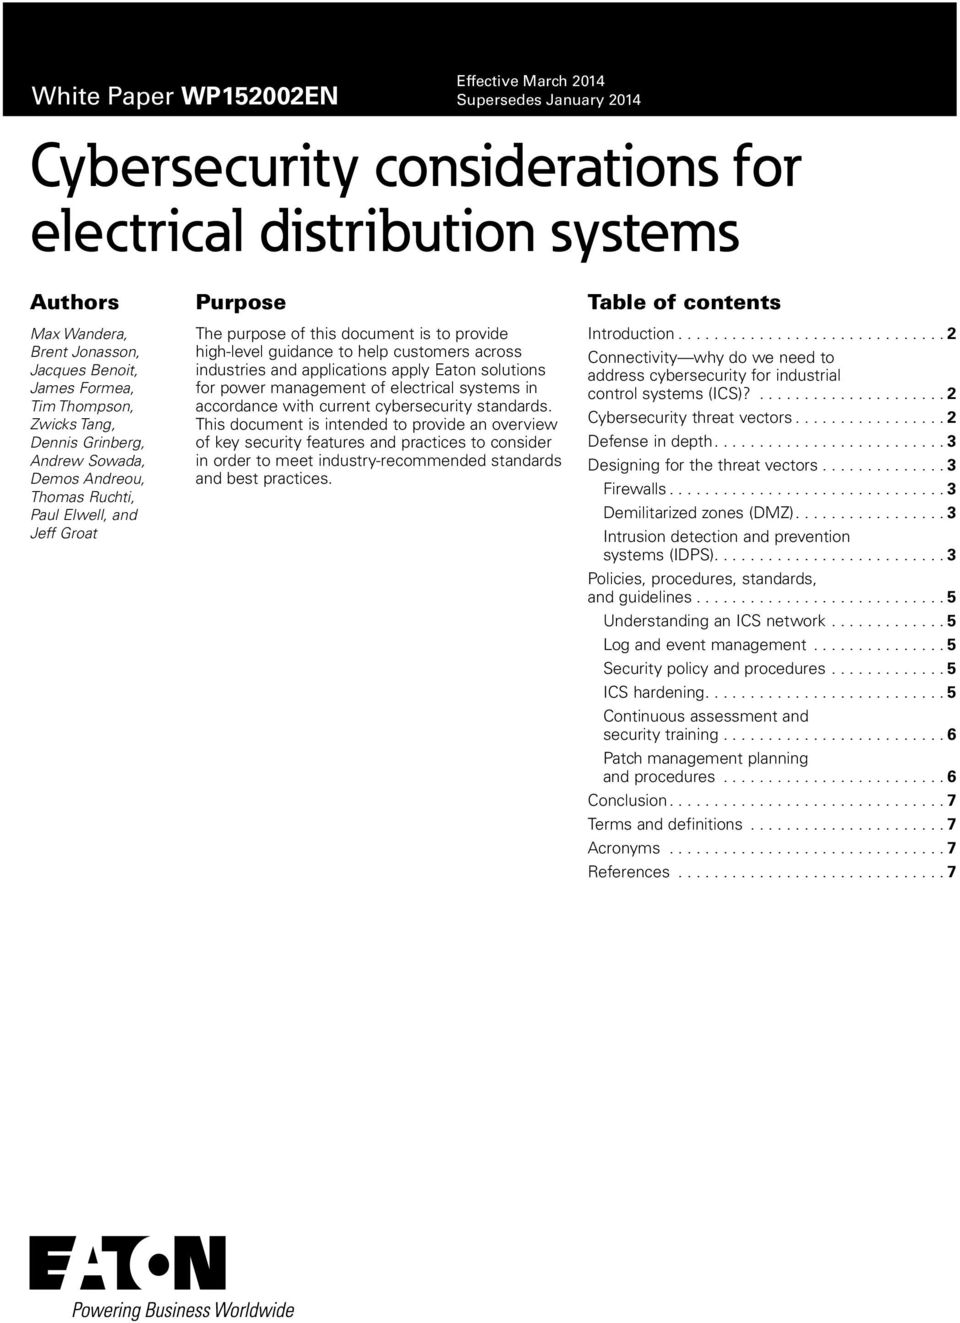 Eaton solutions for power management of electrical systems in accordance with current cybersecurity standards.